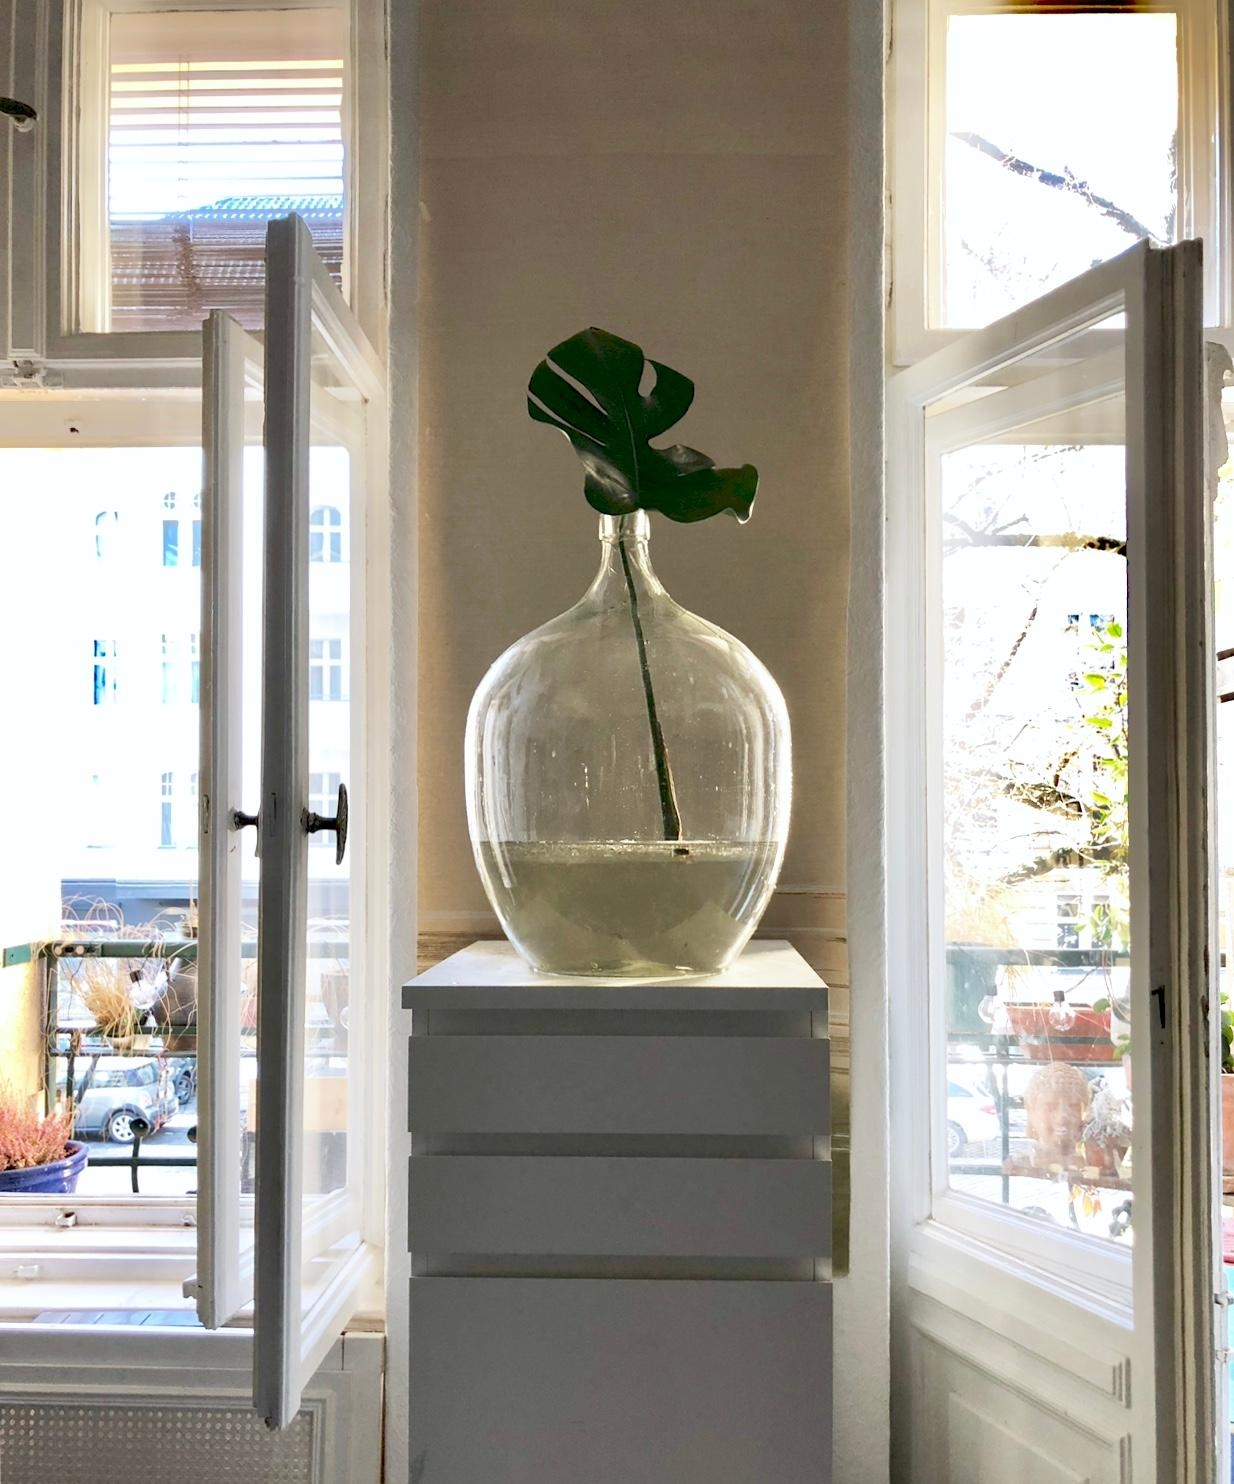 #altbau #berlin #monstera #weinballon #vase